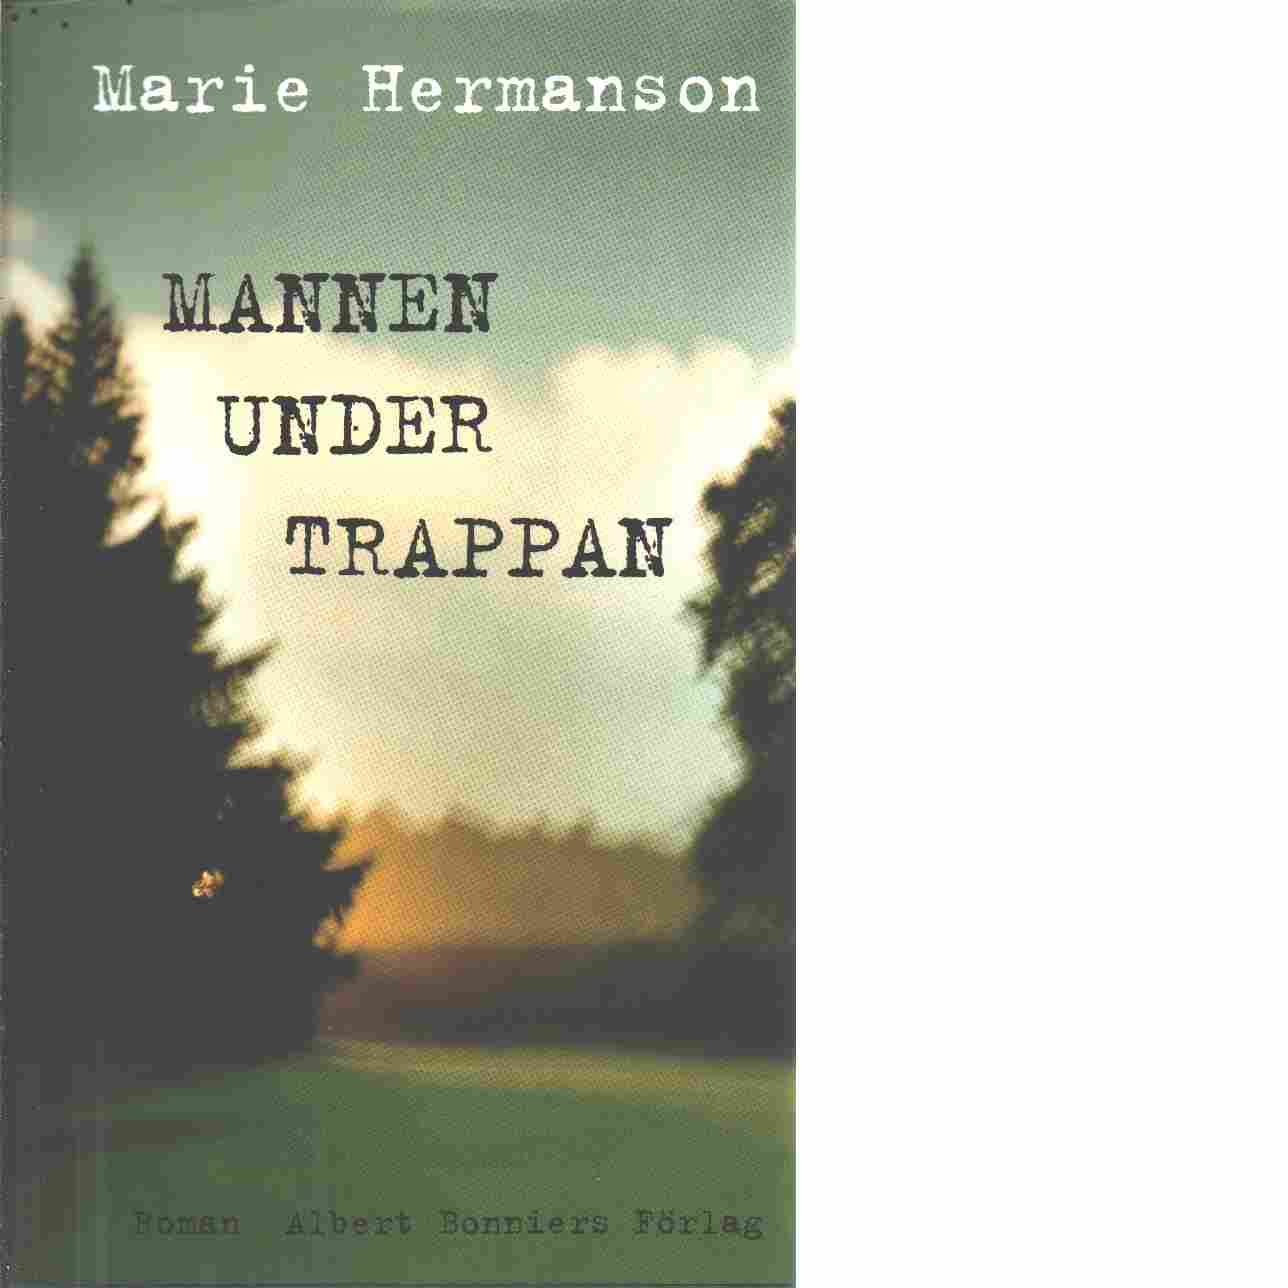 Mannen under trappan - Hermanson, Marie